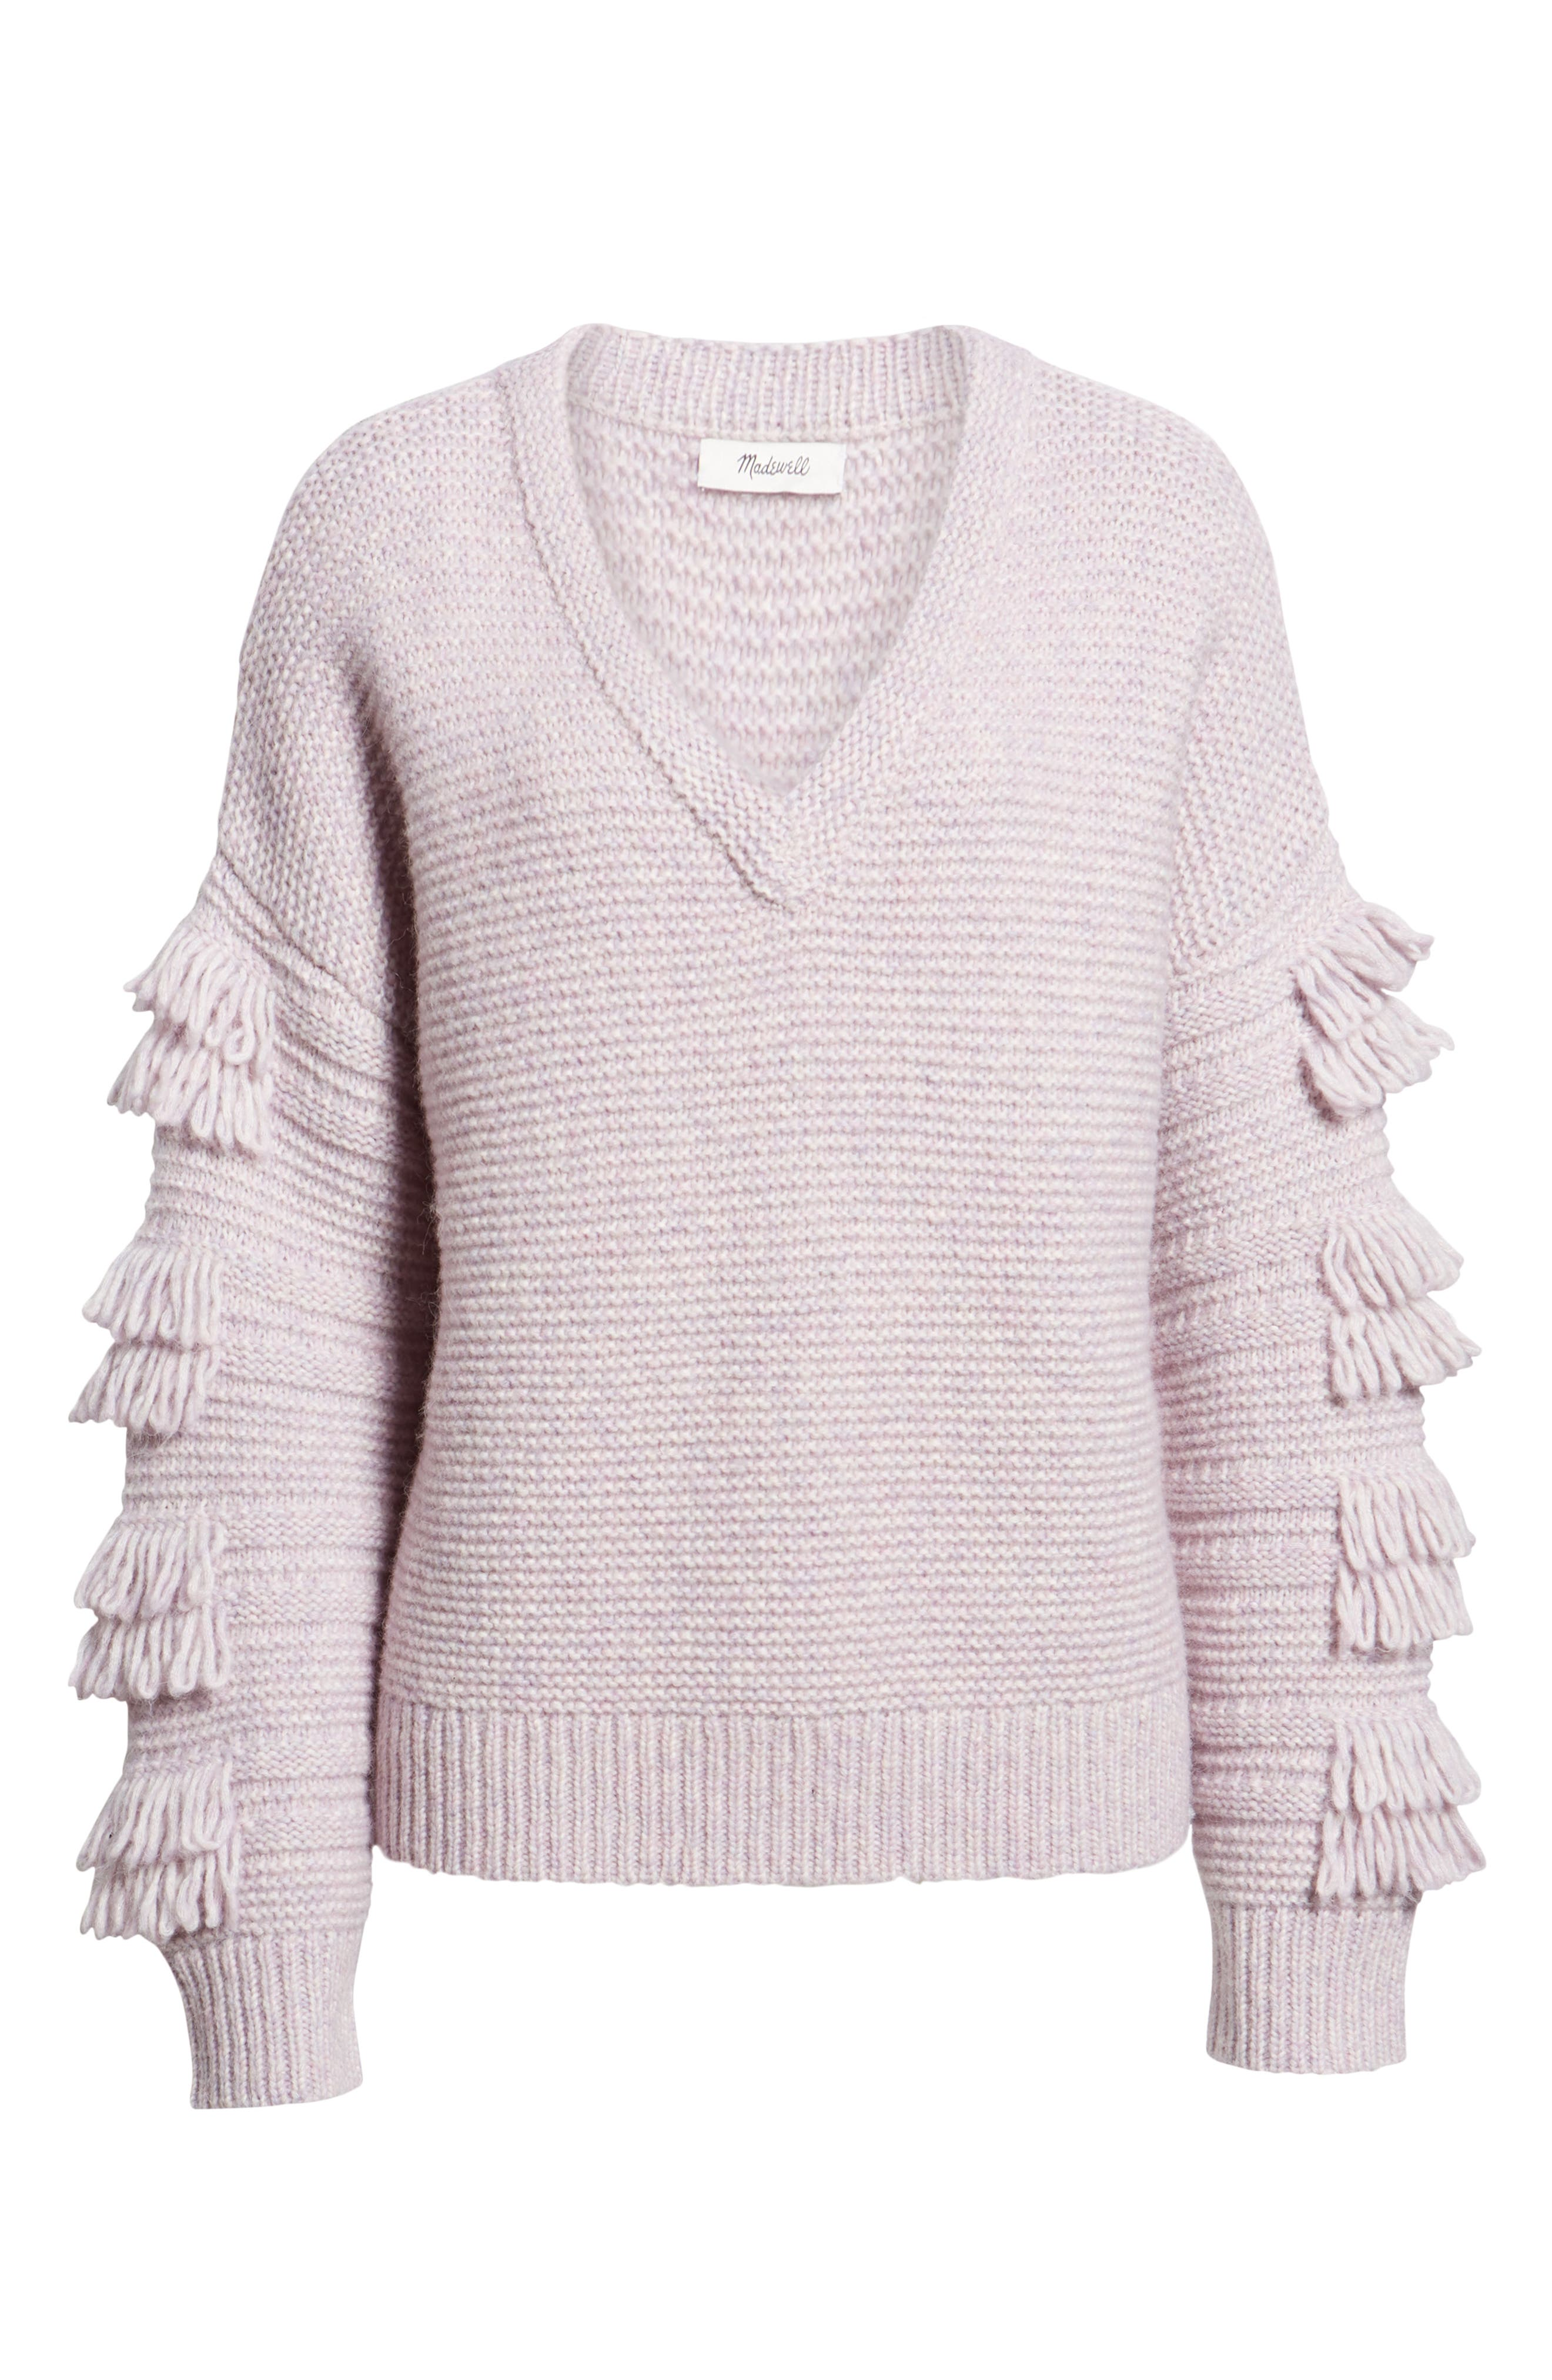 Fringe Sleeve Pullover Sweater,                             Alternate thumbnail 6, color,                             HEATHER PERIWINKLE